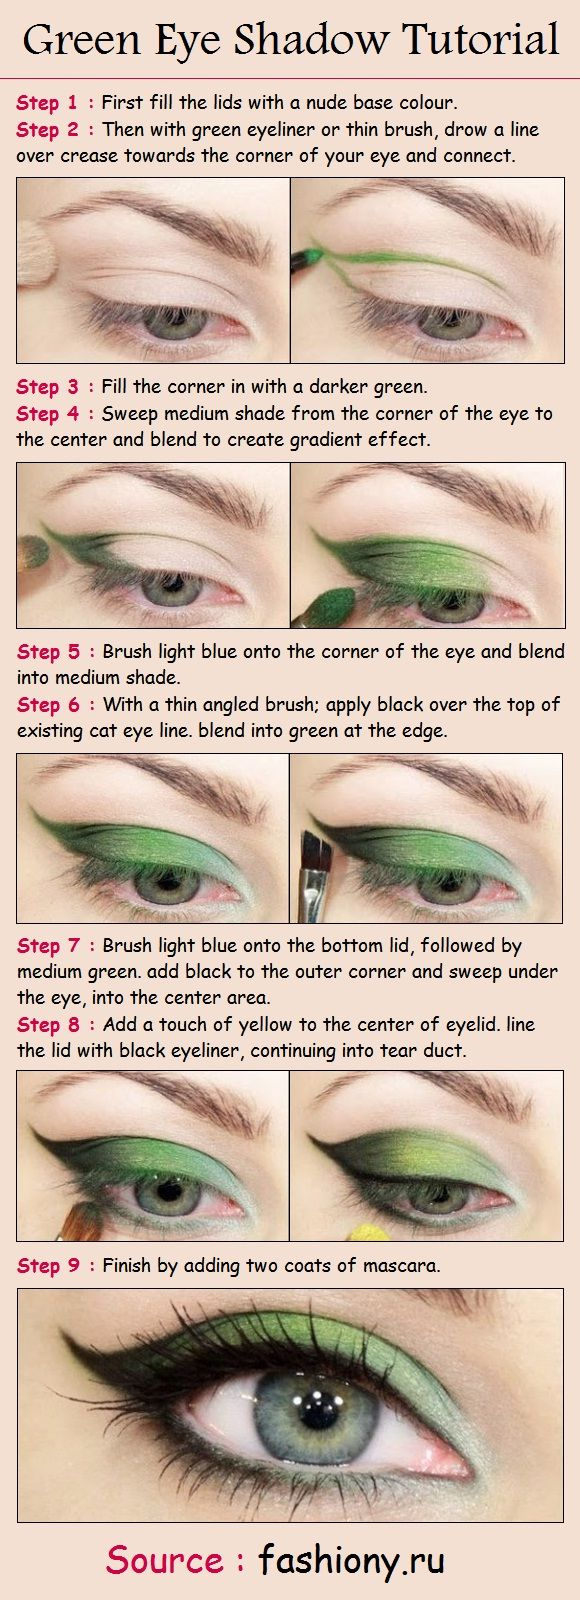 Green Eye Shadow Tutorial | PinTutorials